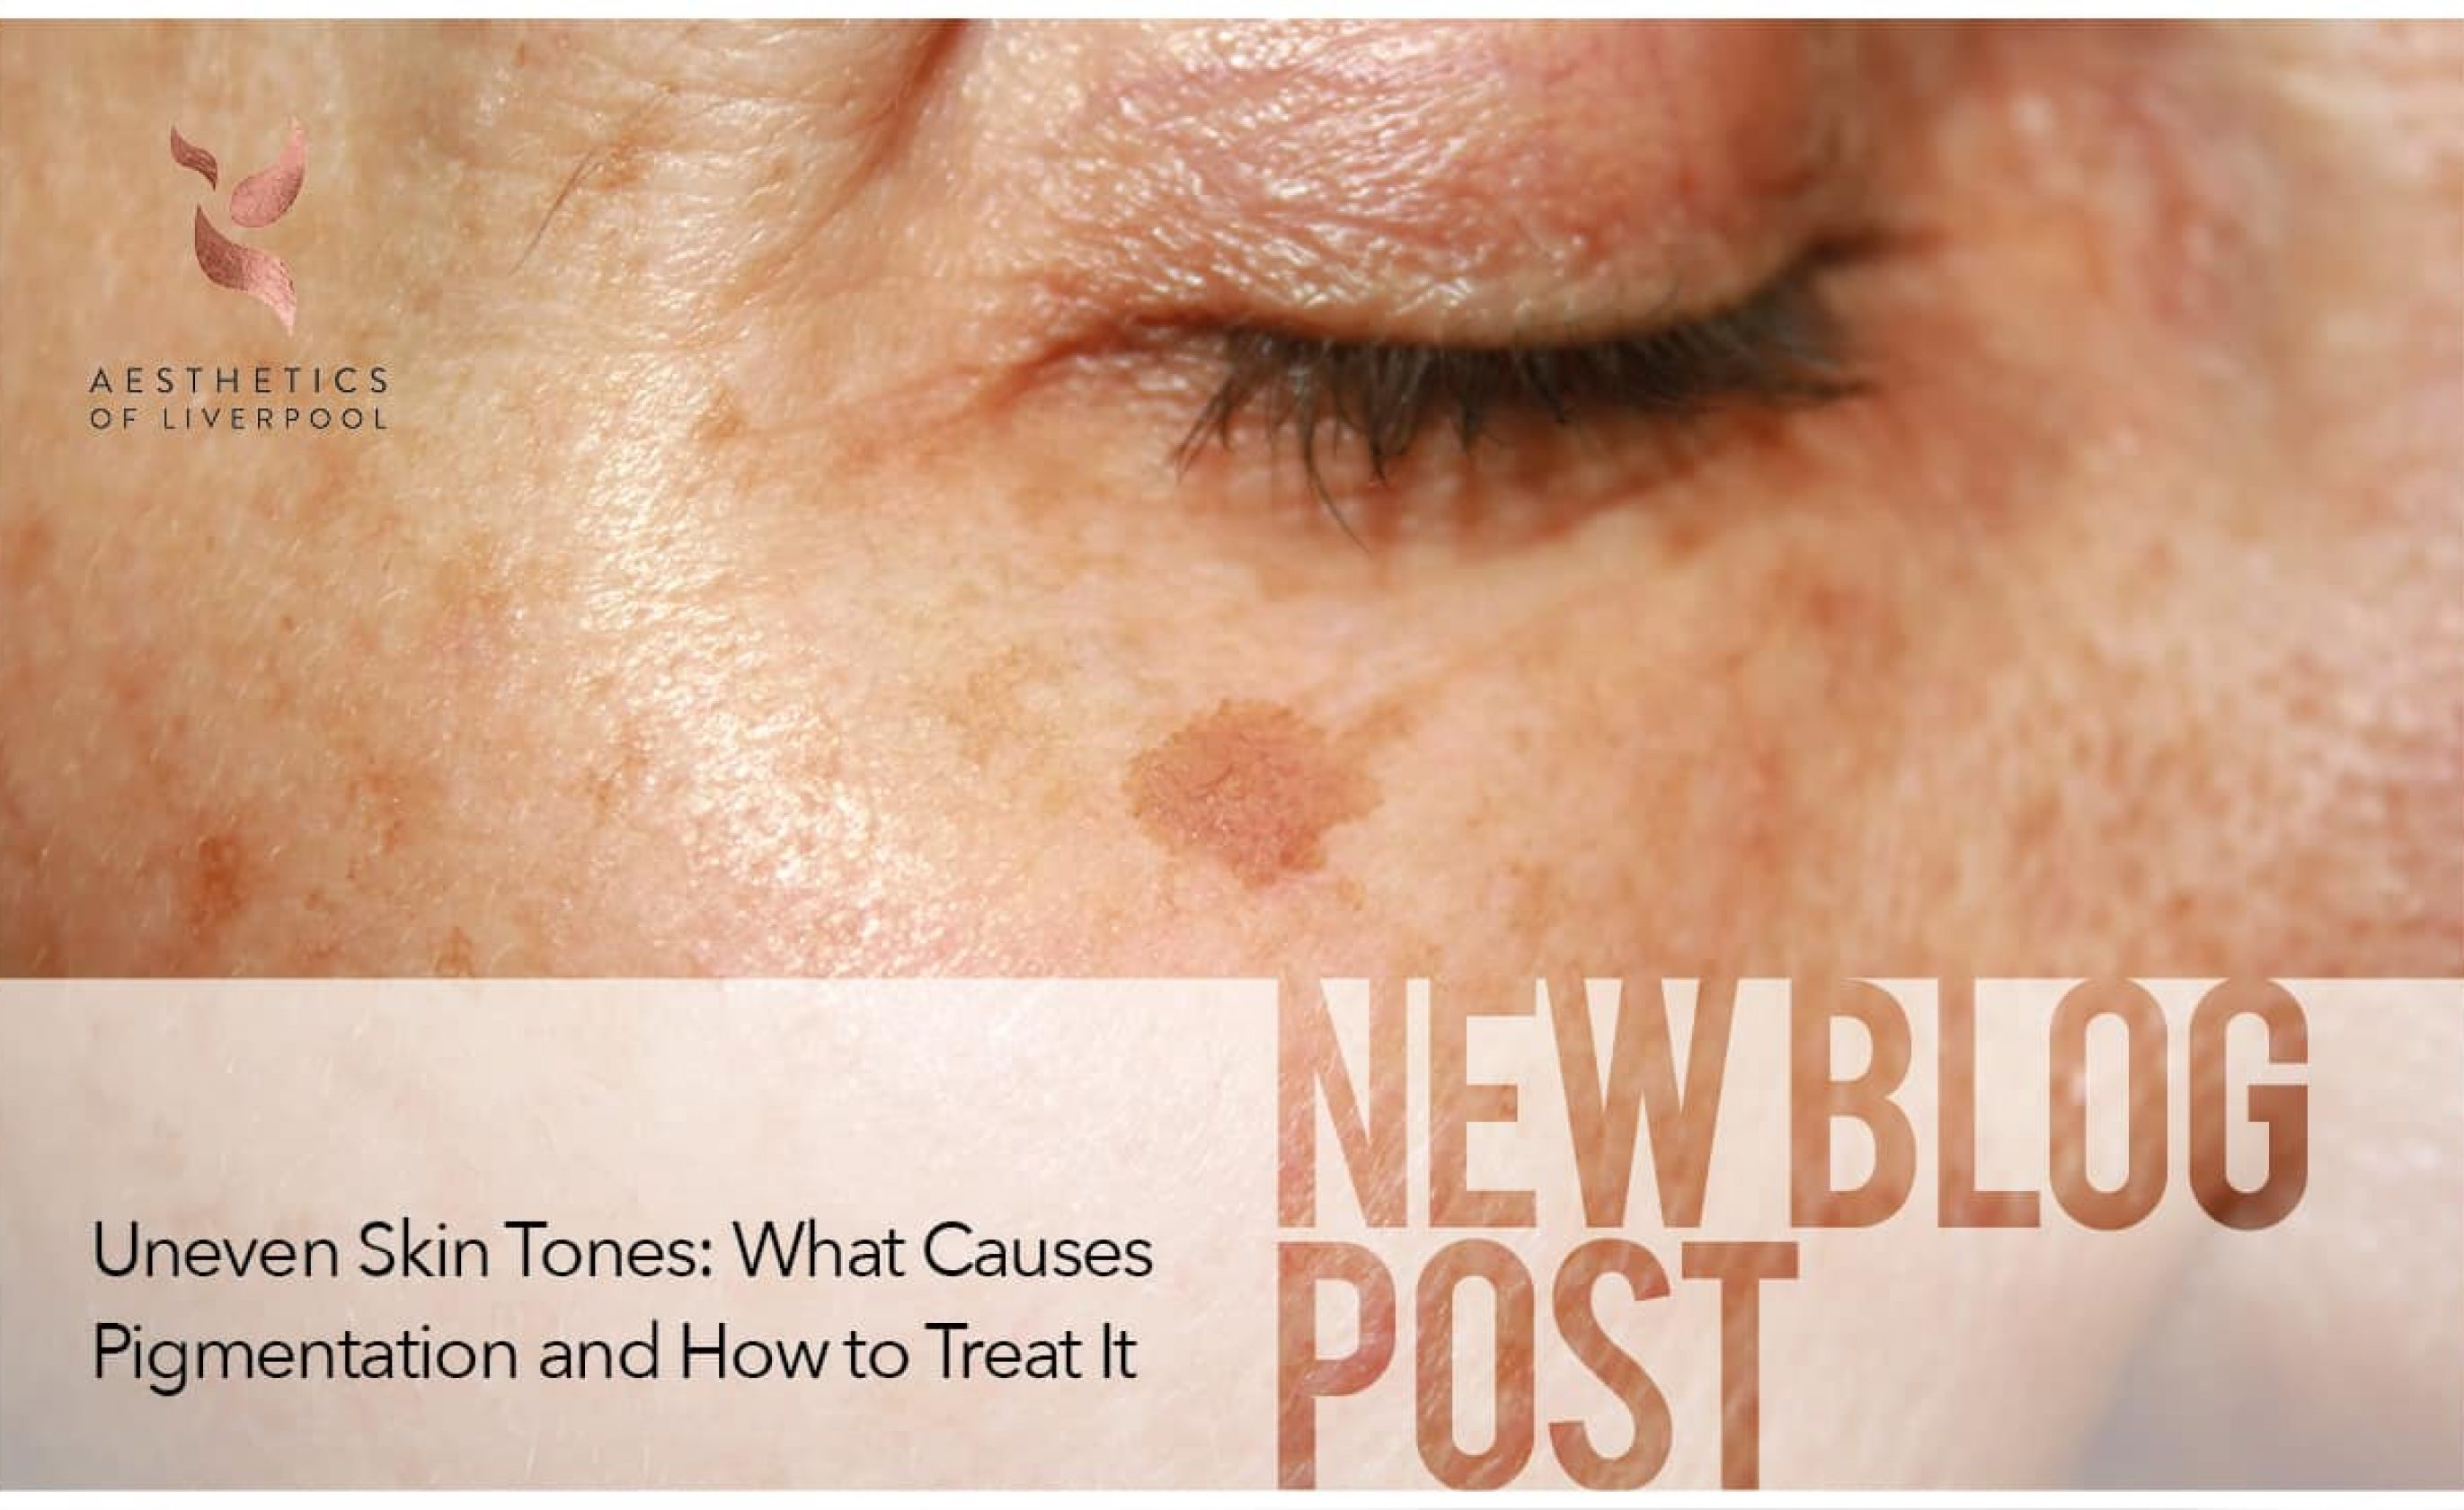 Uneven Skin Tones: What Causes Pigmentation and How to Treat It